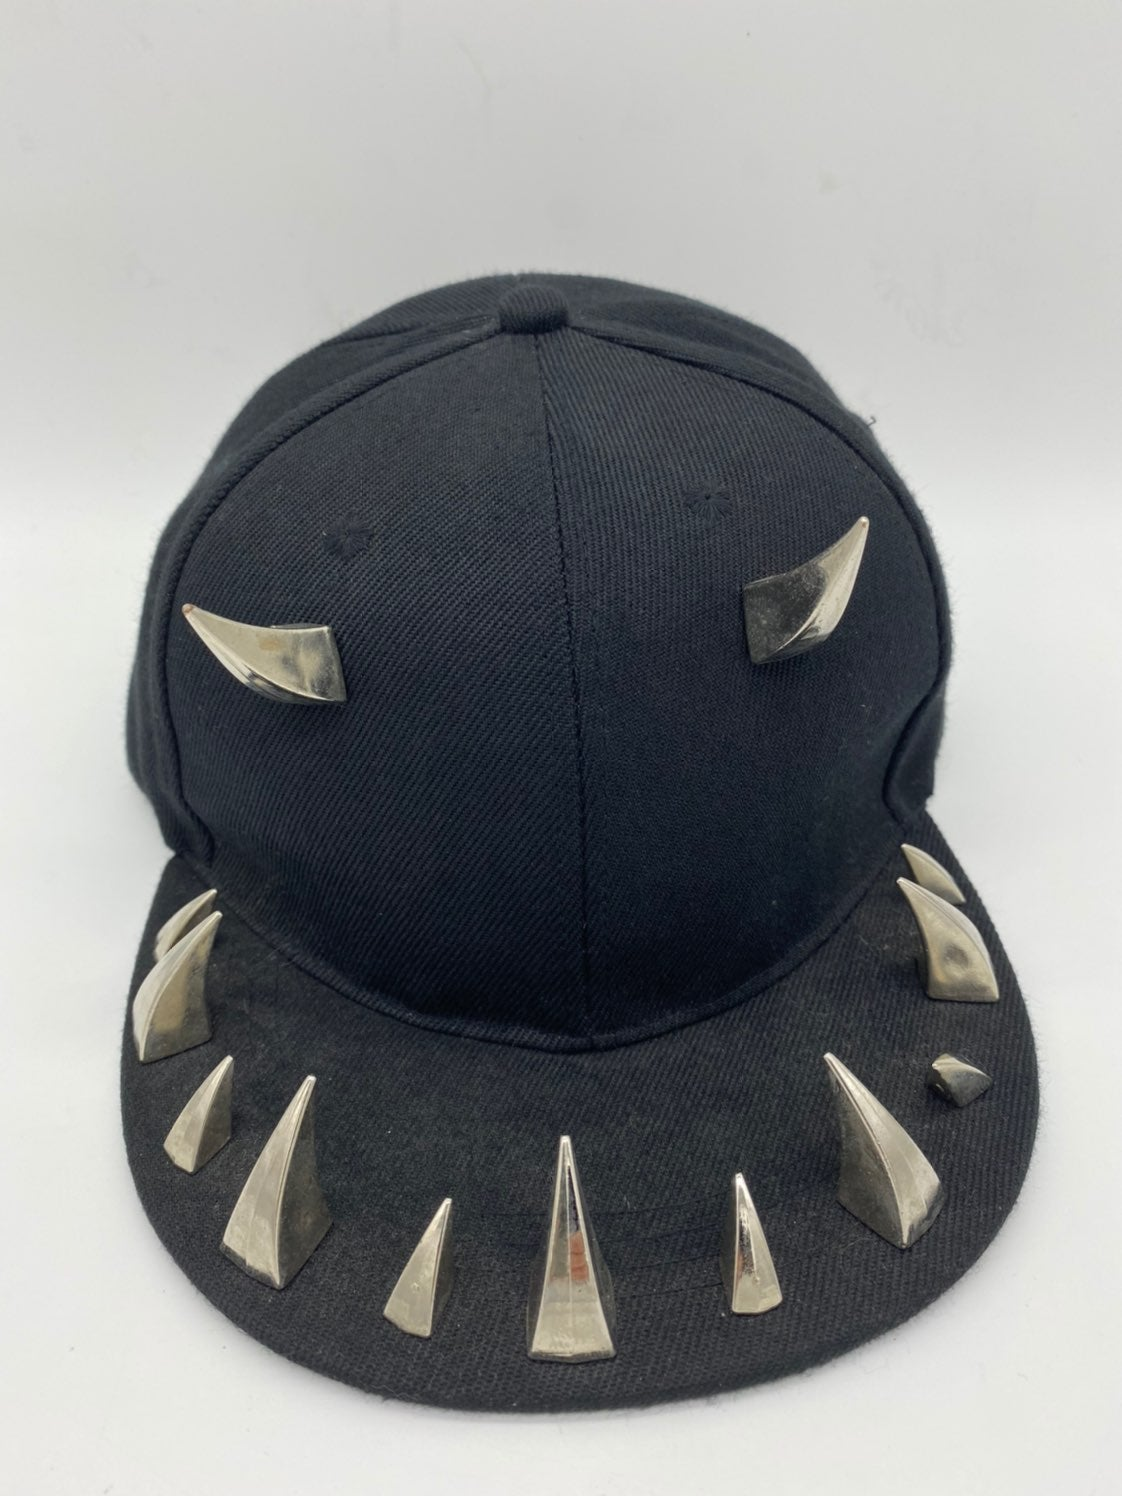 Hat with metal design